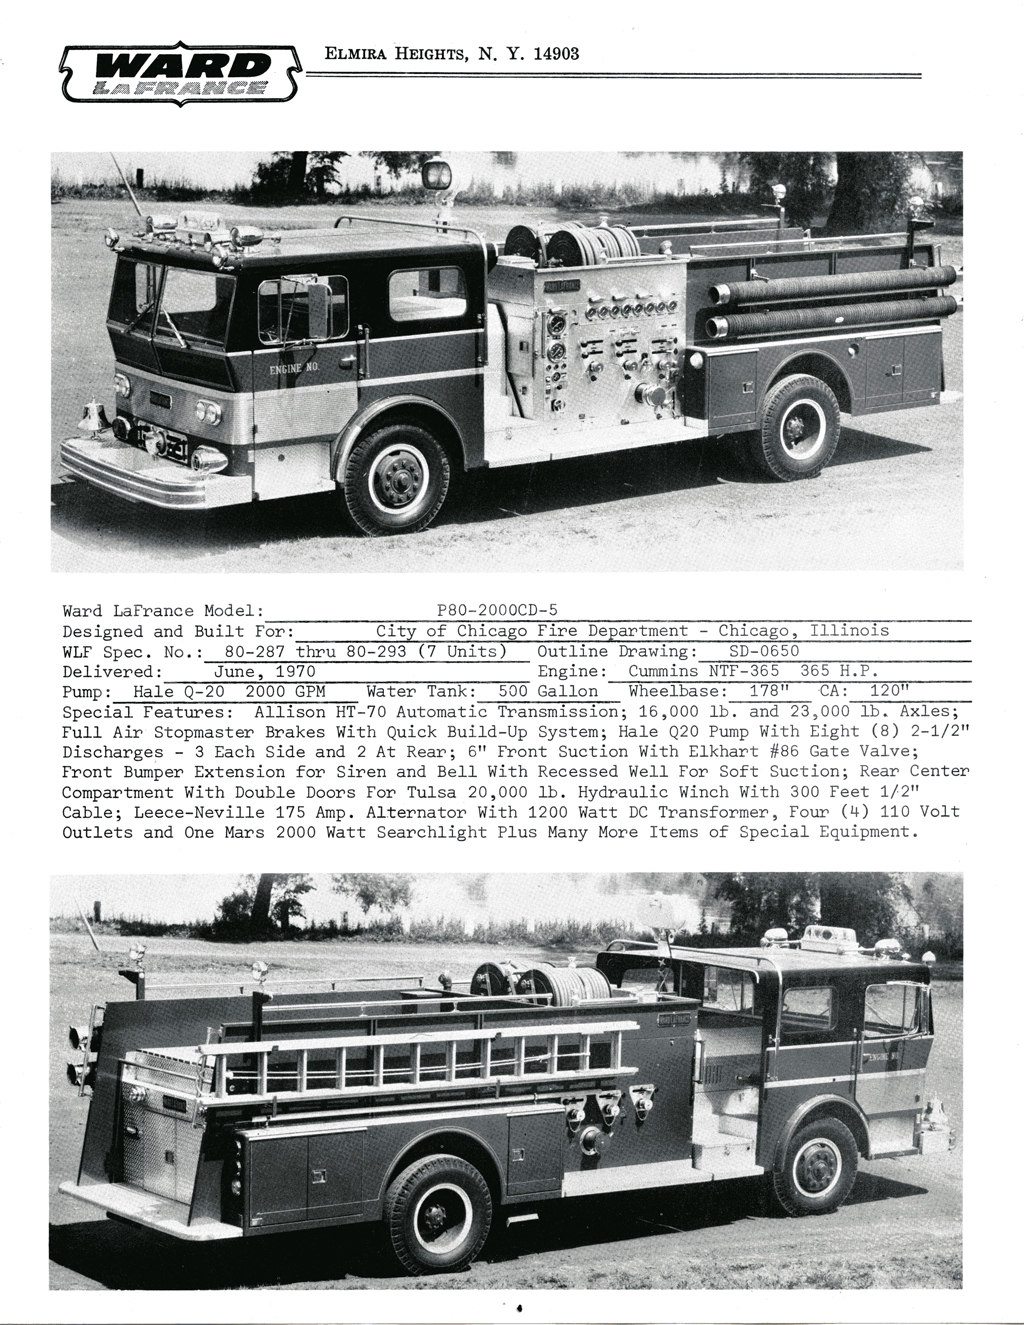 hight resolution of ward lafrance 1970 brochure with chicago engines